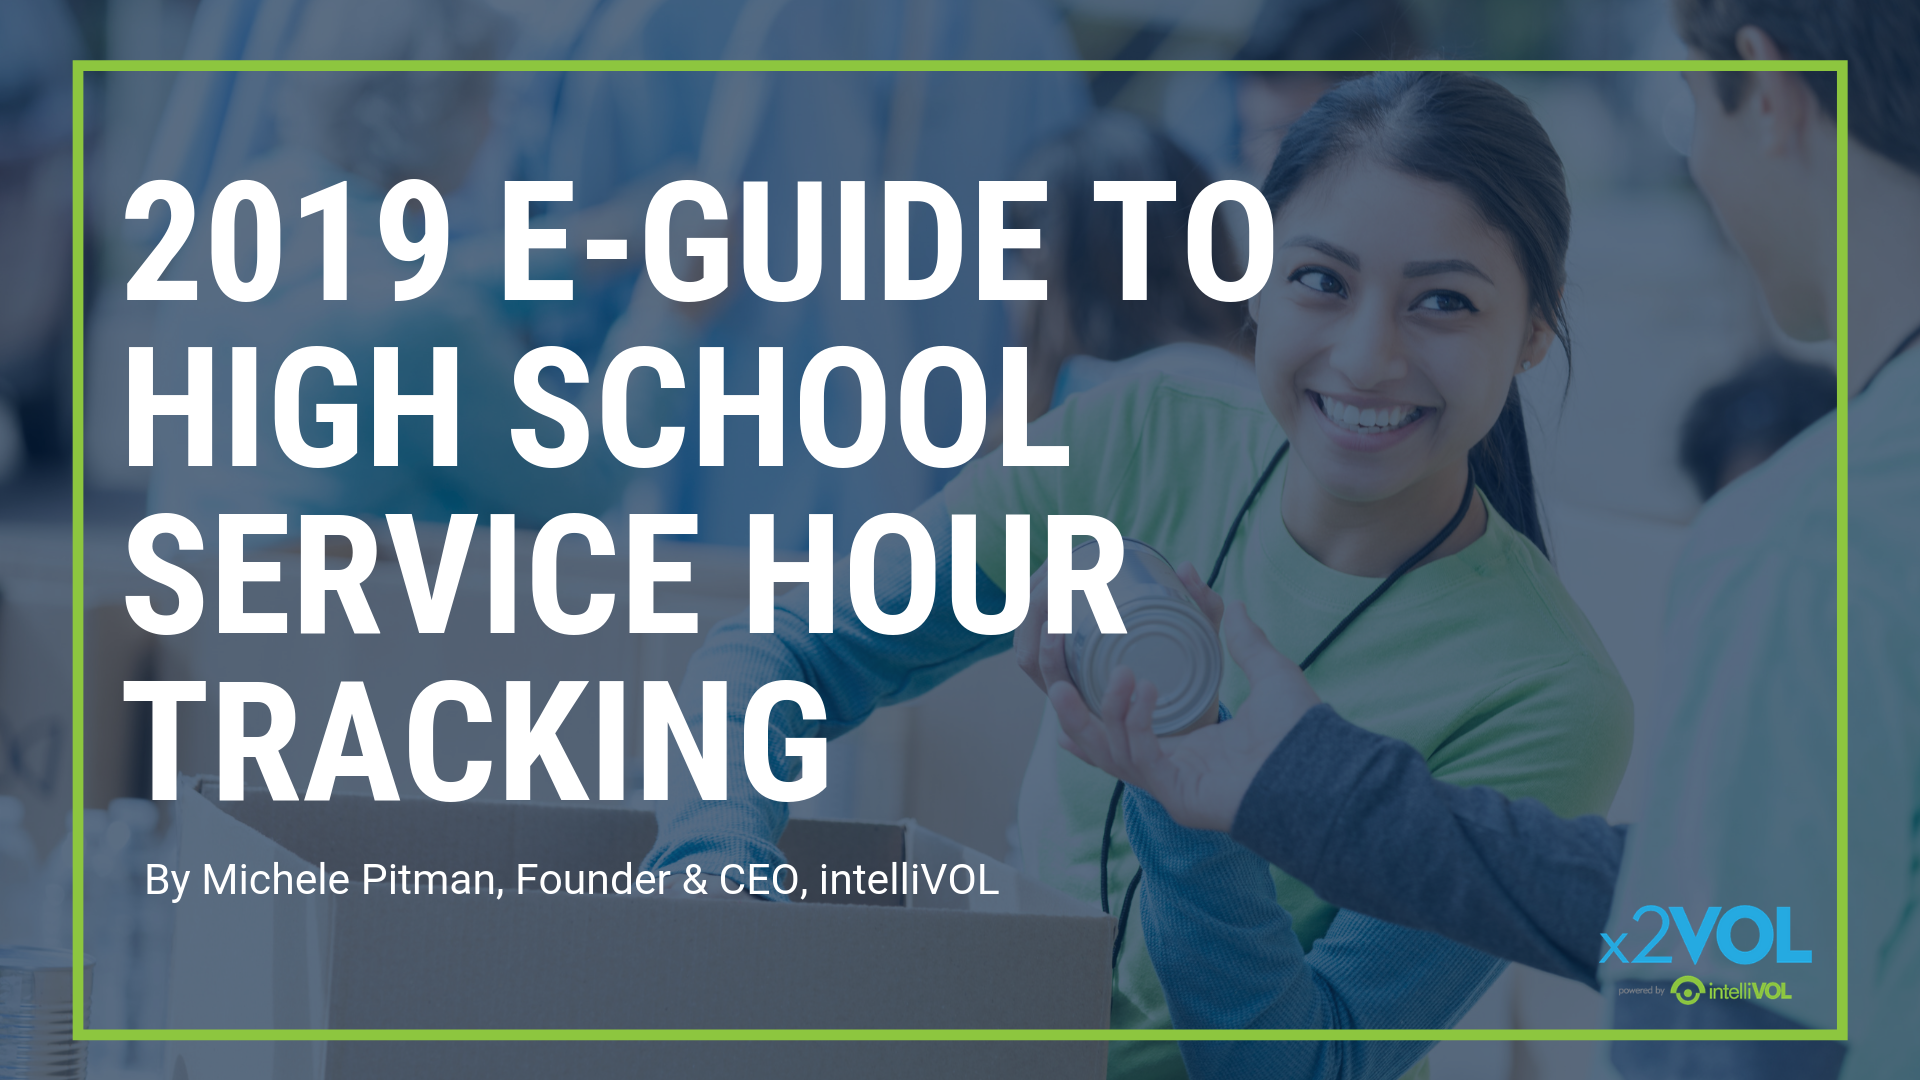 2019 E-Guide to high school service hour tracking (3)